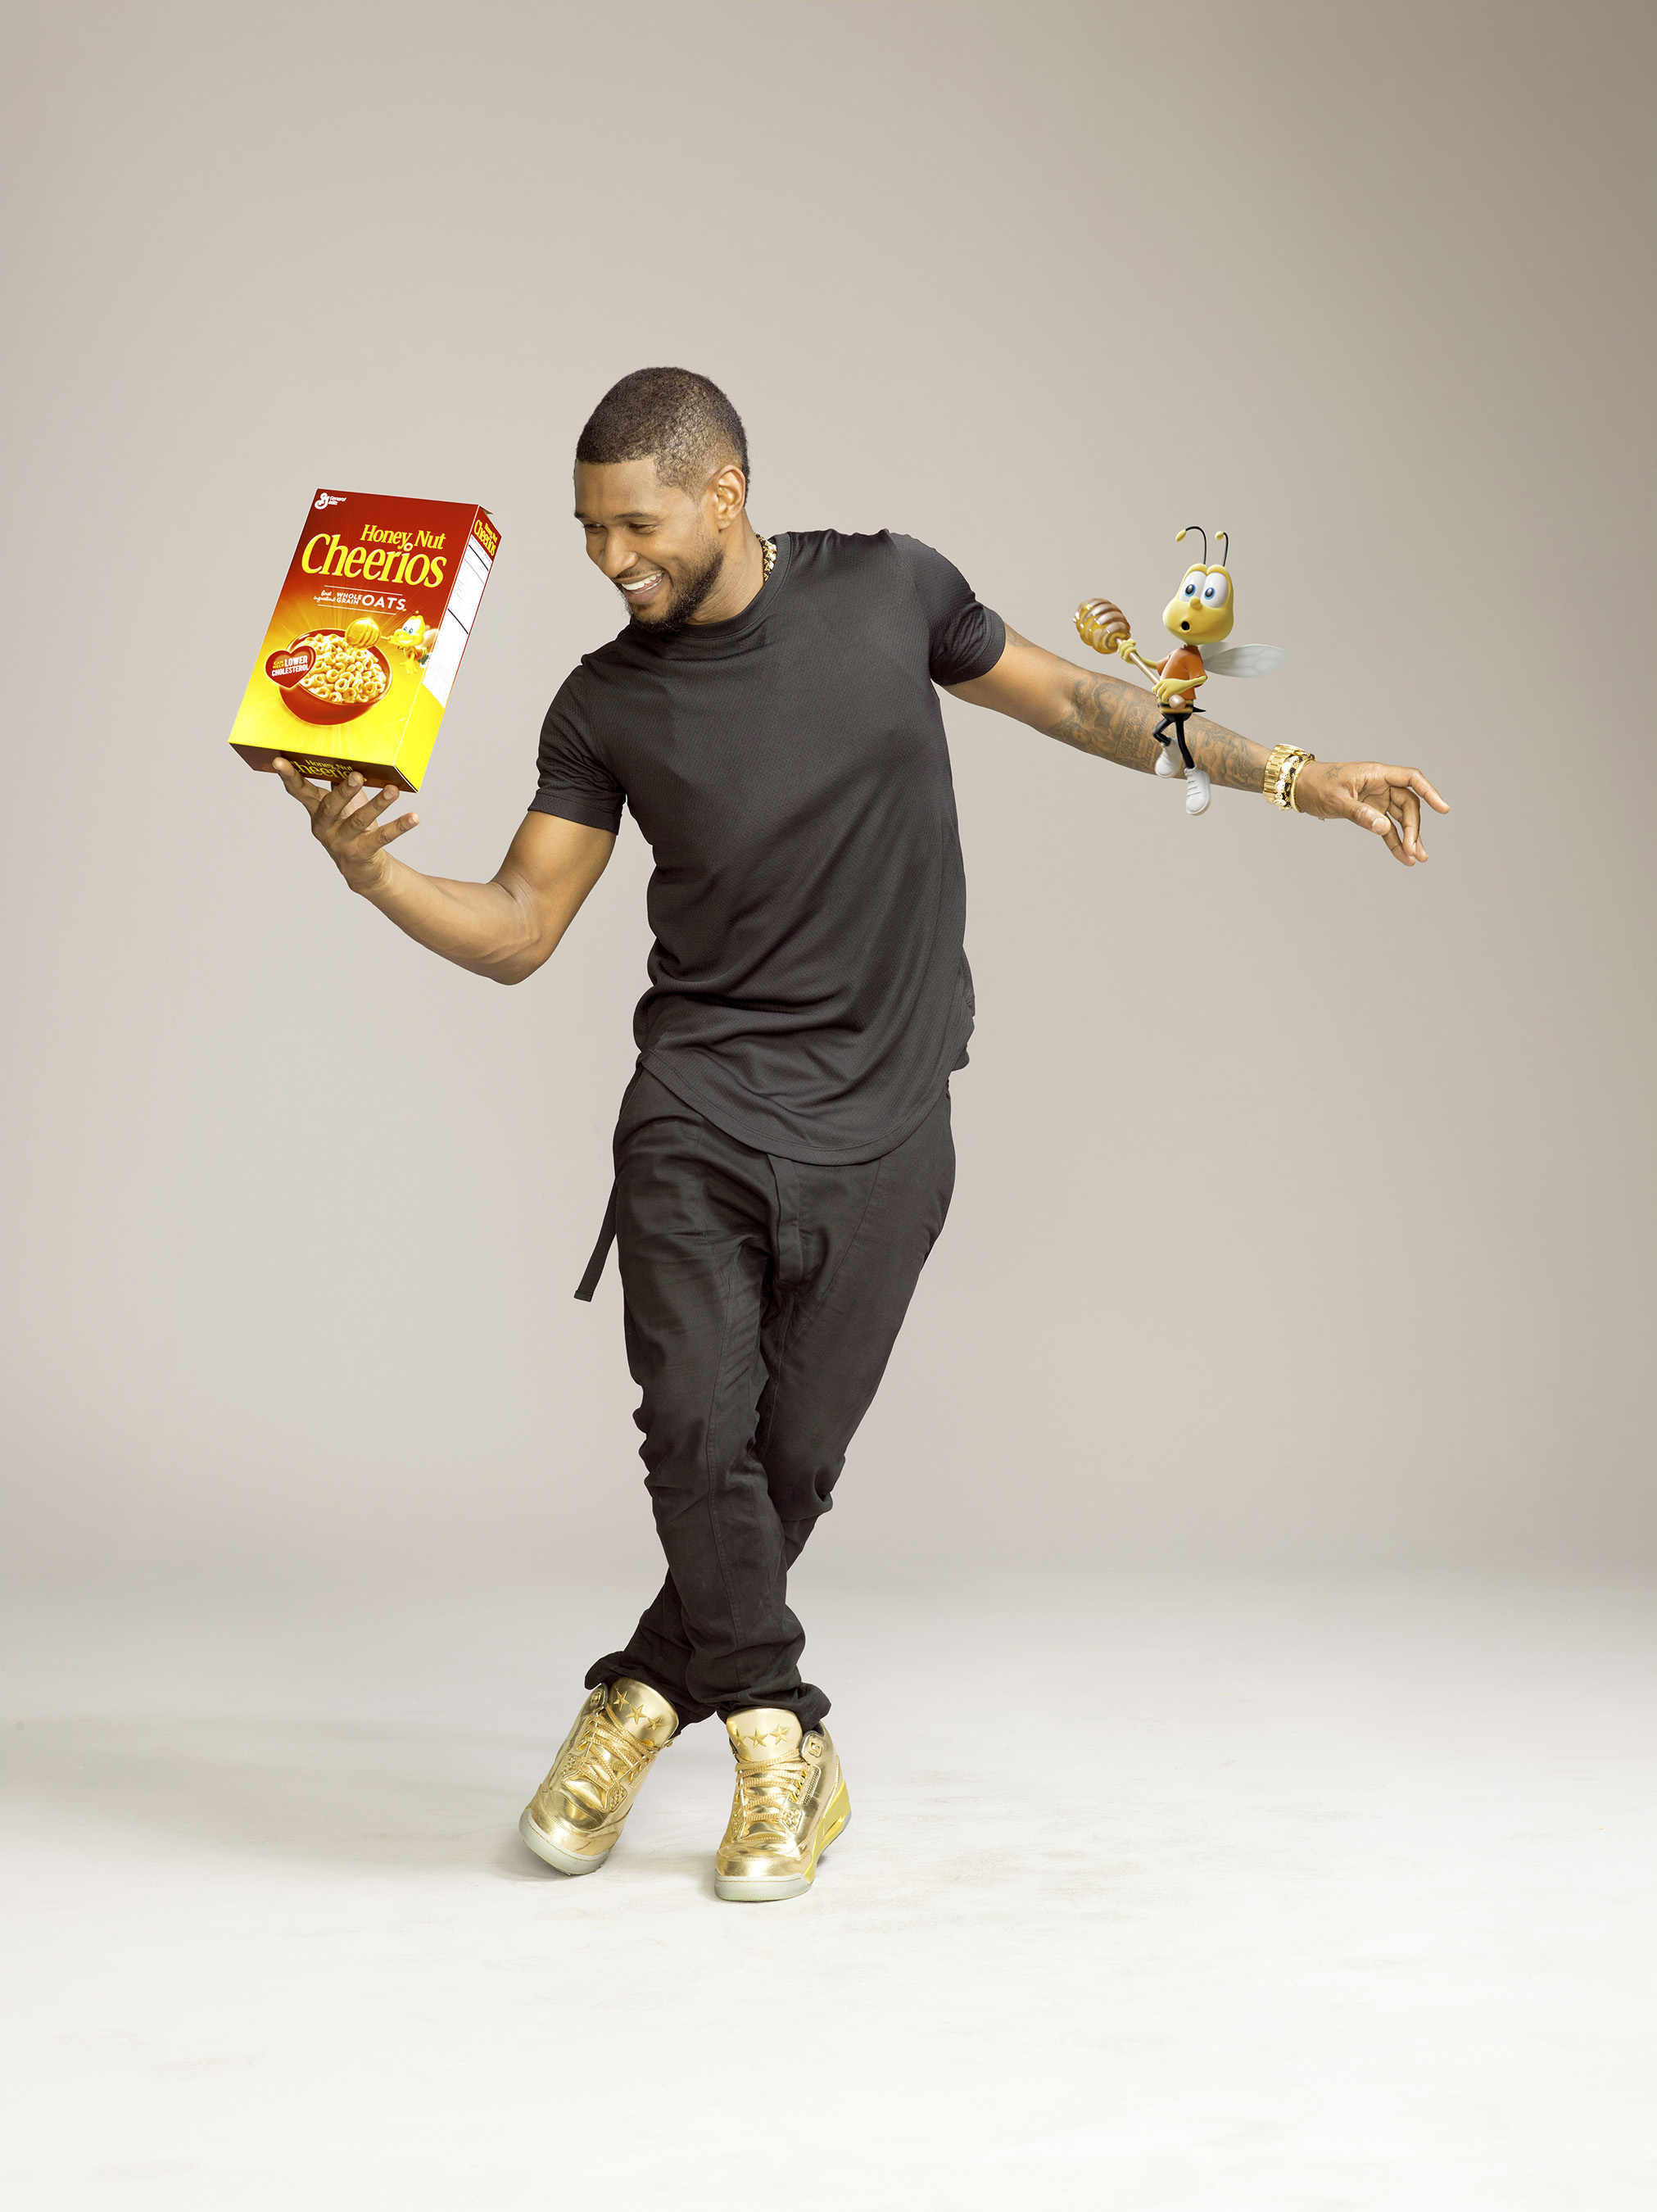 Music superstar Usher joins Honey Nut Cheerios™ in new campaign encouraging people to celebrate happy and healthy moments